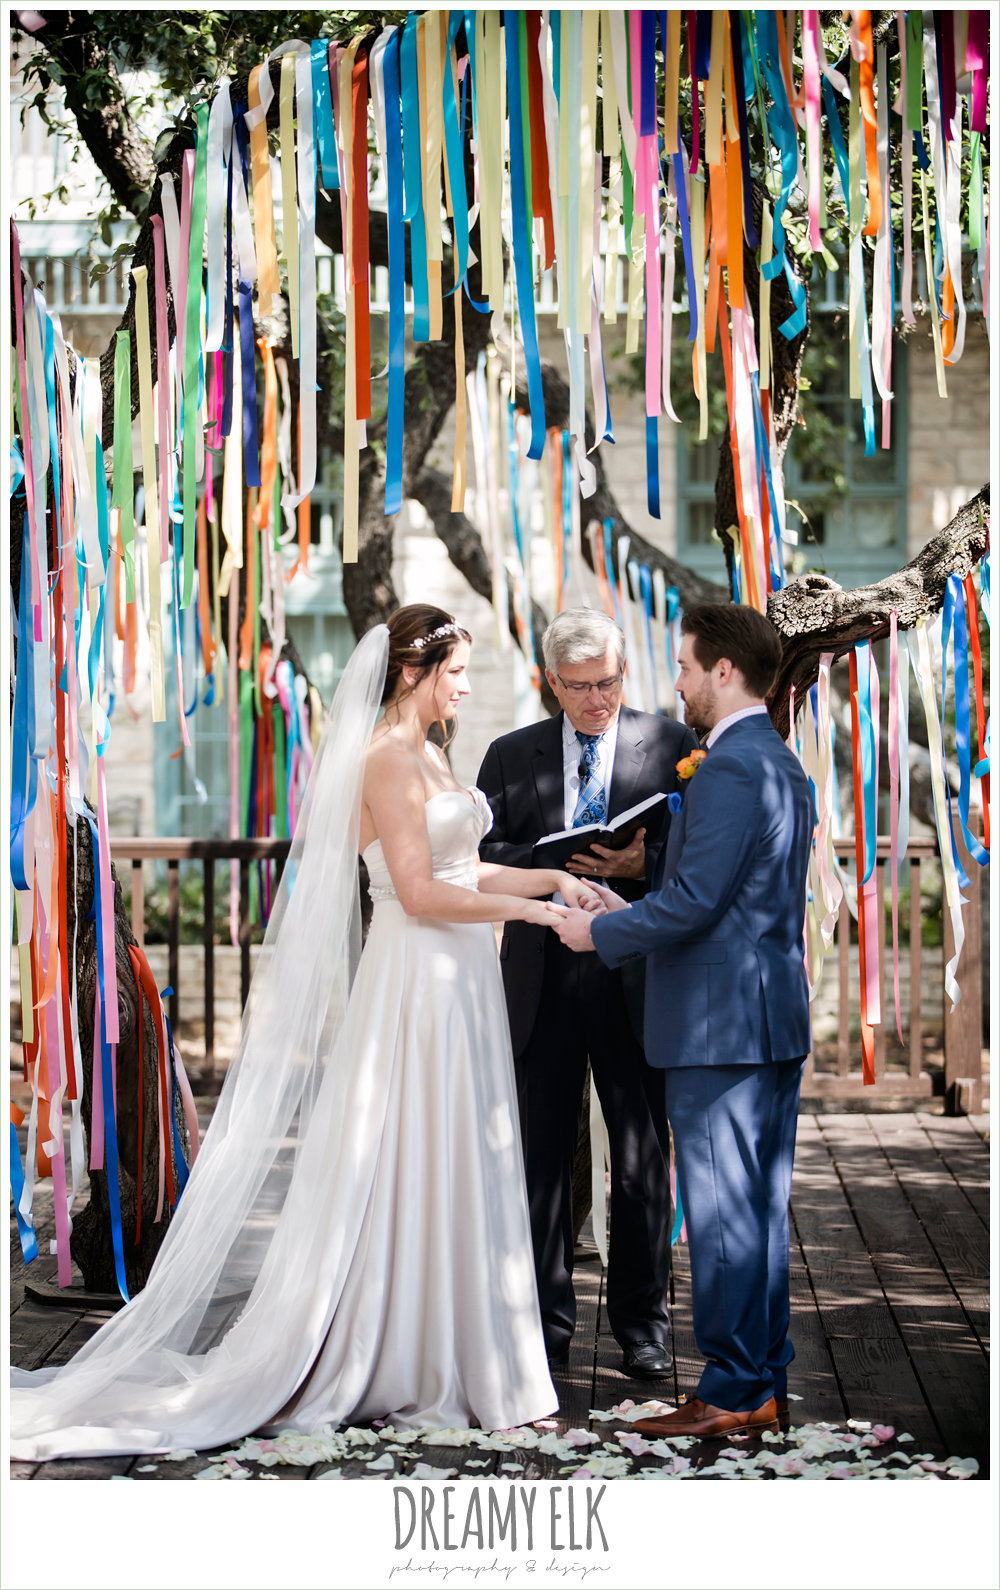 colorful streamers in trees ceremony decorations, groom in men's wearhouse navy suit pink shirt and navy tie, sweetheart strapless justin alexander wedding dress in sand color, bride and groom during ceremony, colorful outdoor sunday morning brunch wedding, hyatt hill country club, san antonio wedding photo {dreamy elk photography and design}